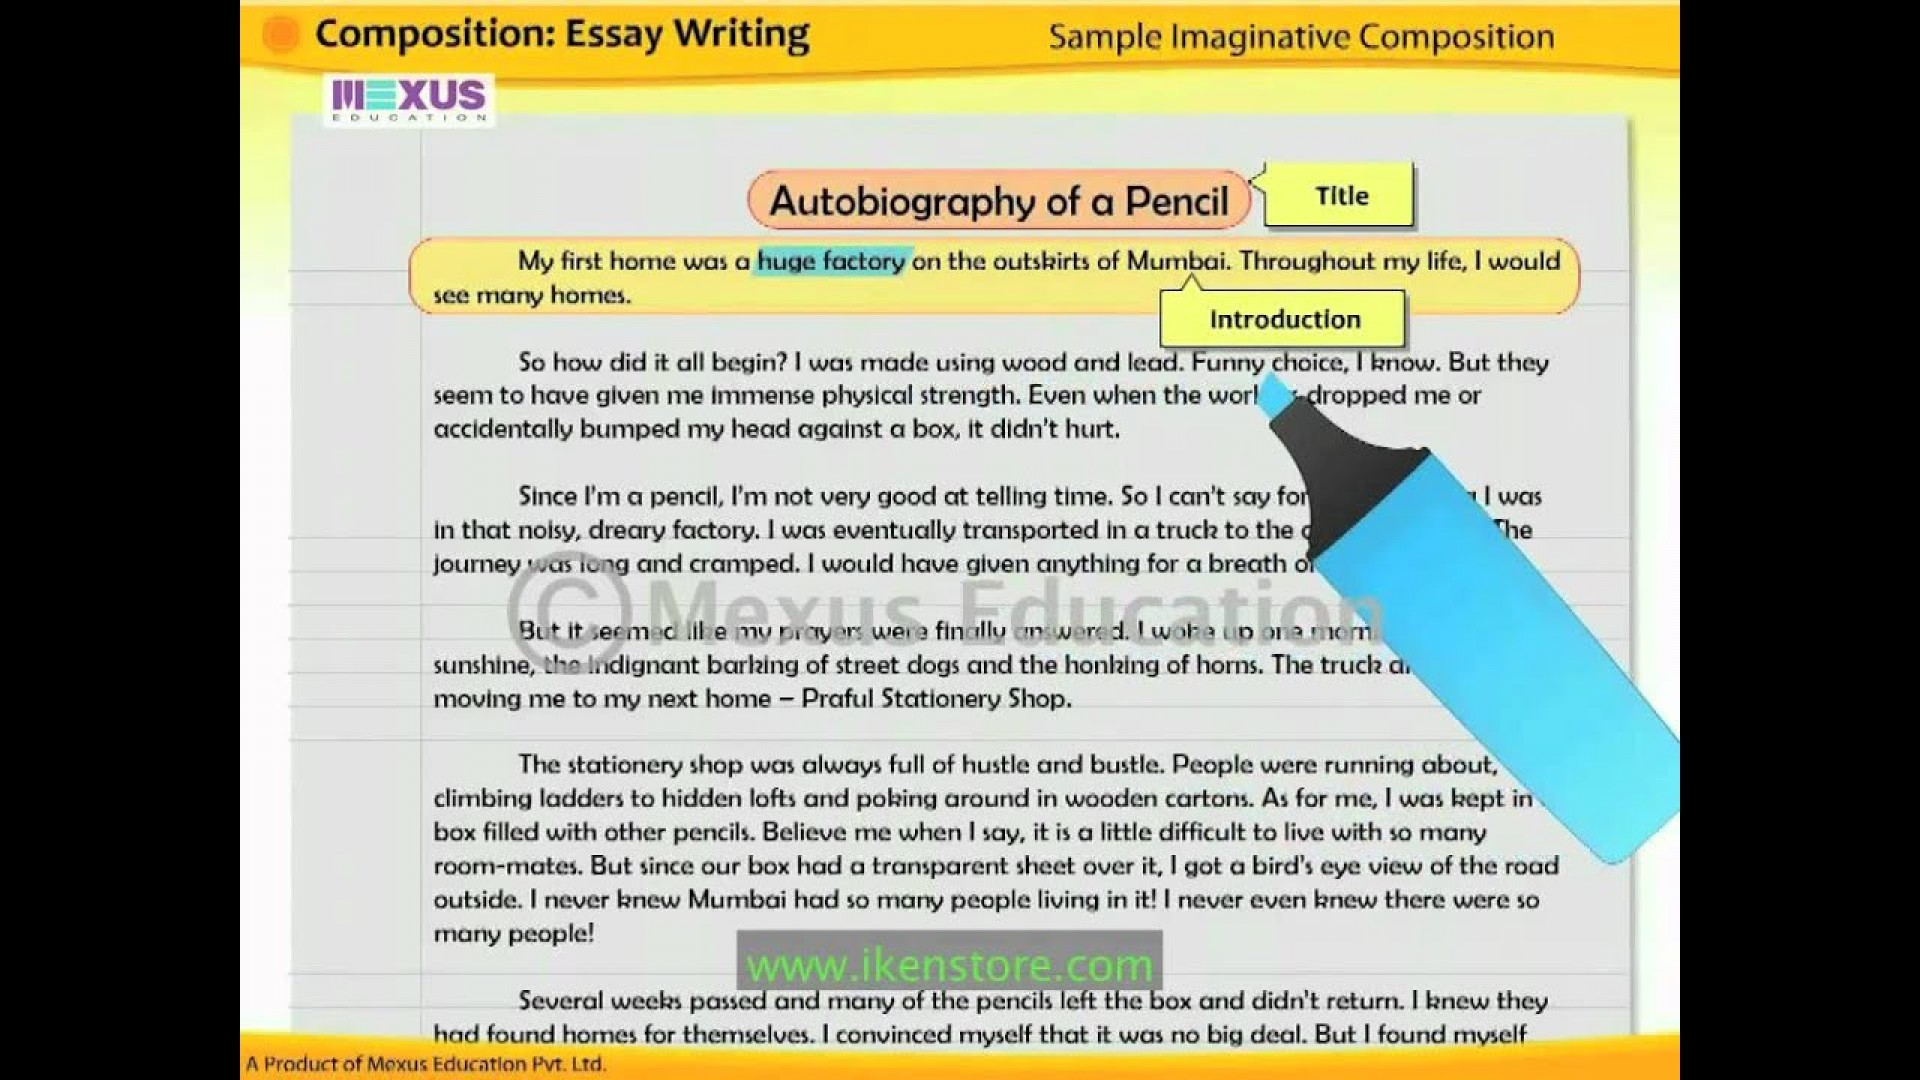 005 Composition Essay Example Beautiful Picture Narrative Long Writing 1920